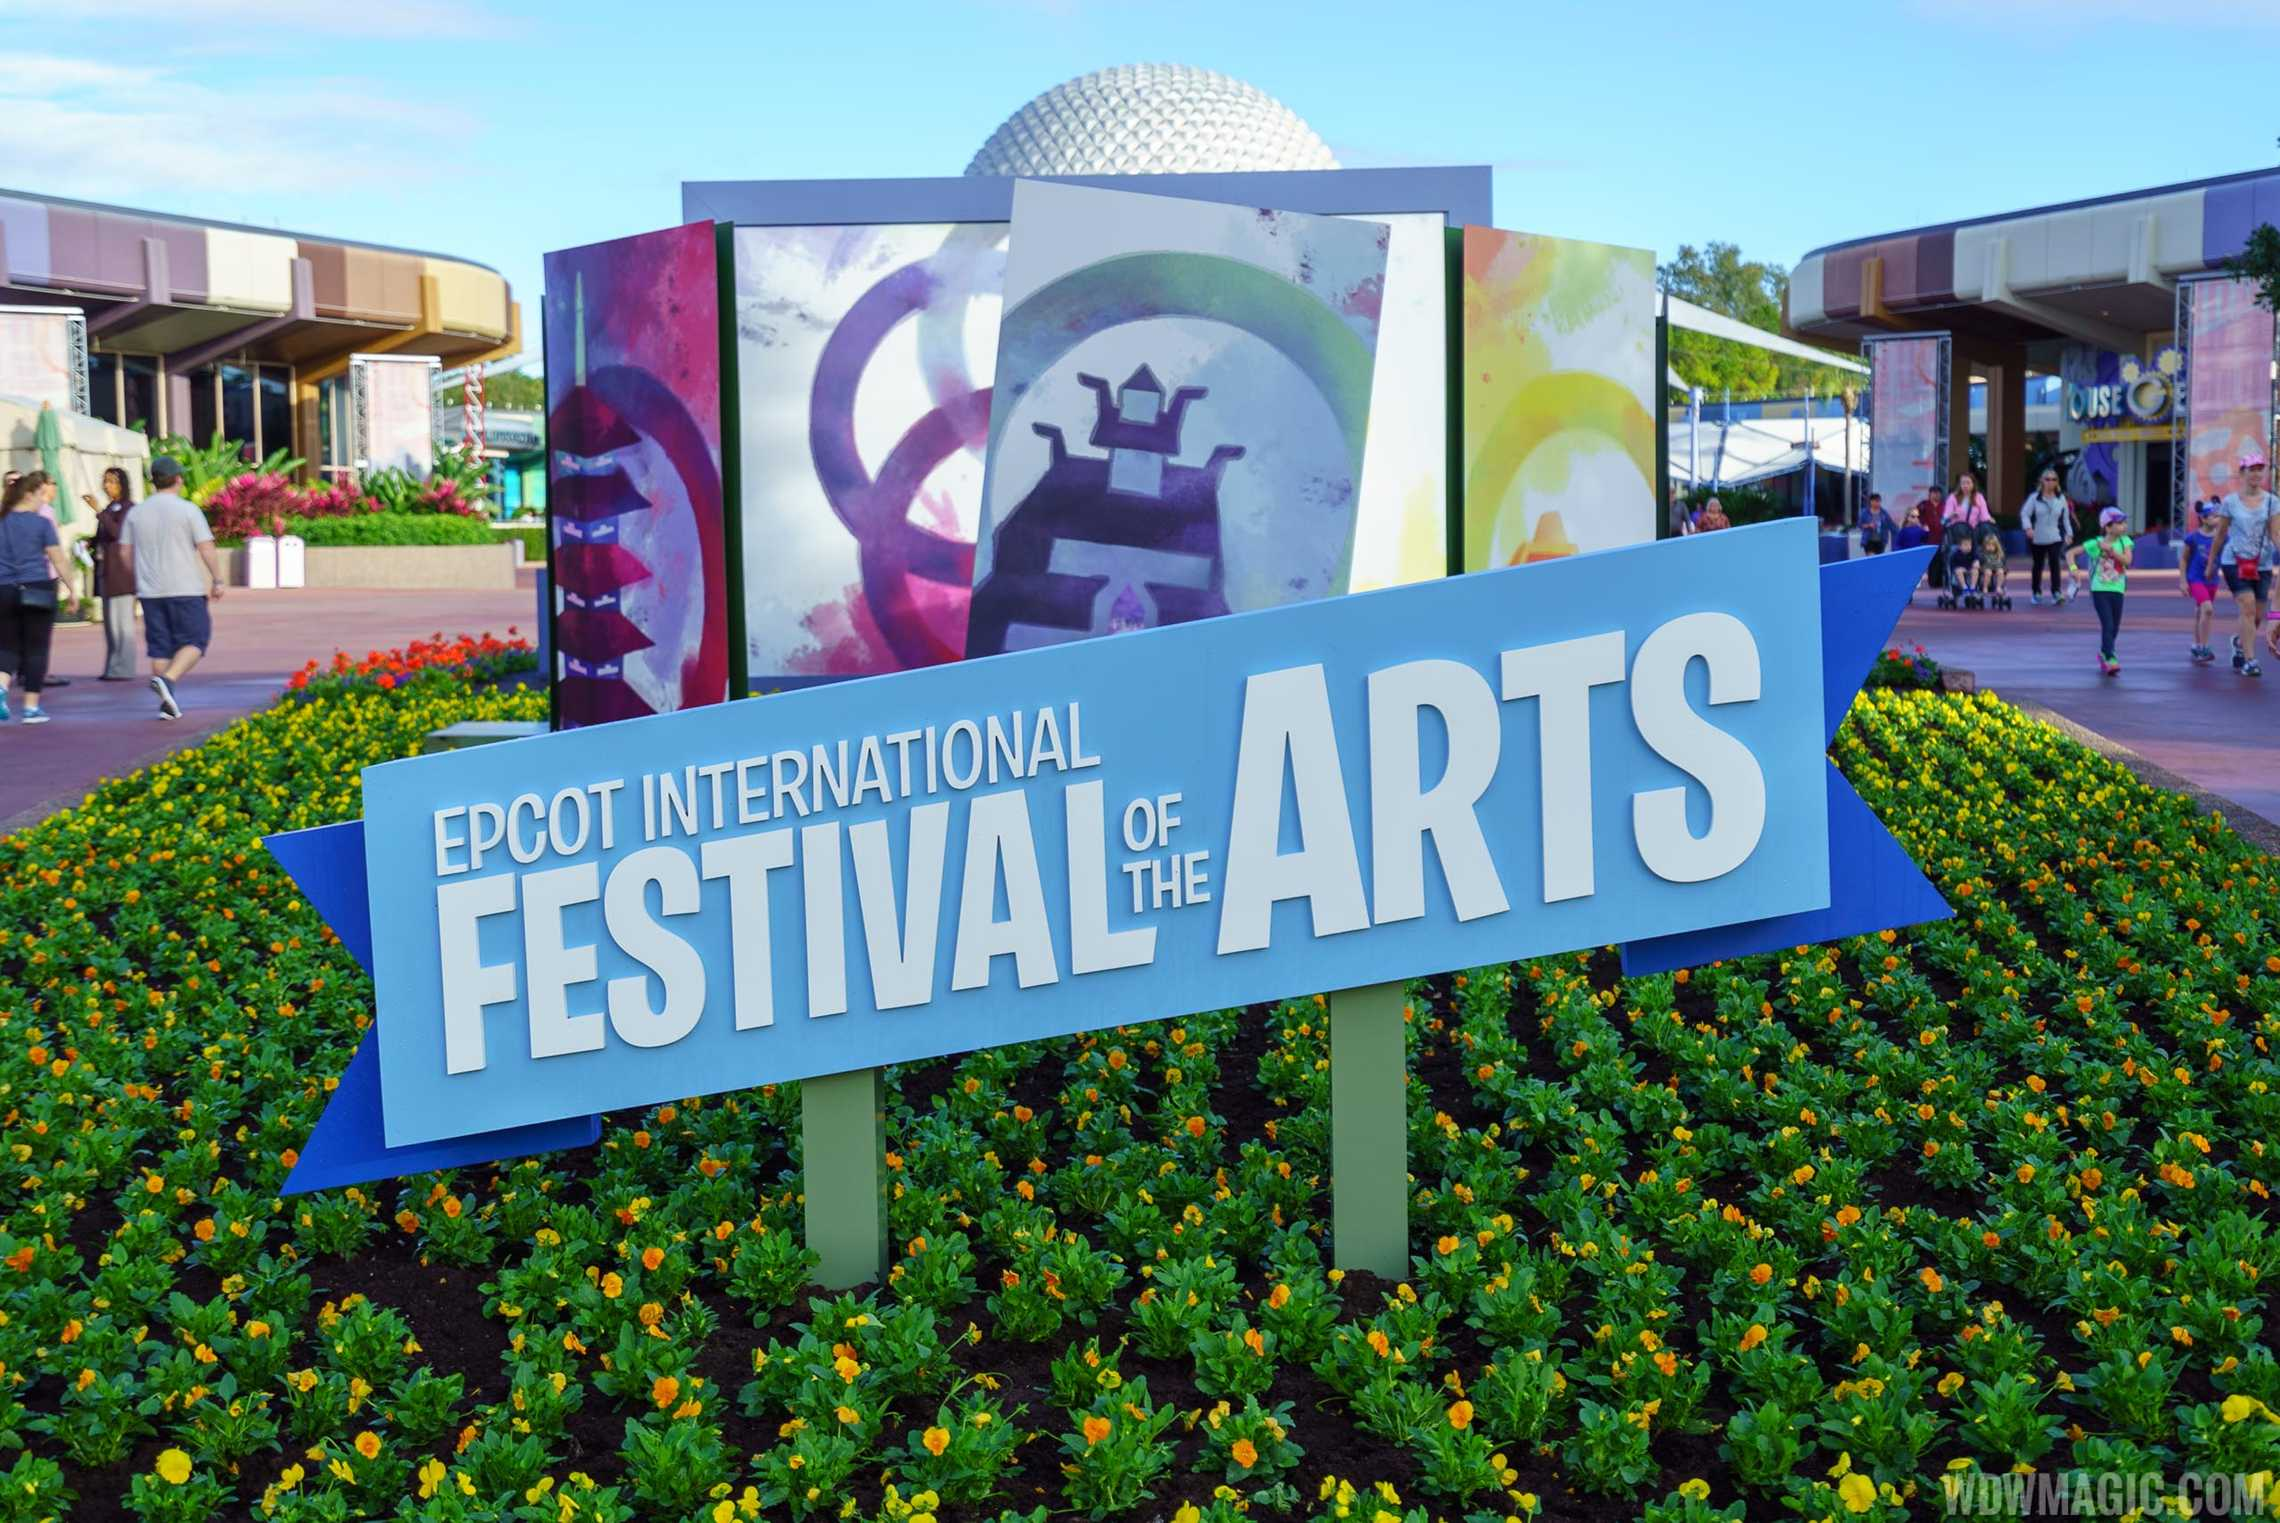 Epcot Festival of the Arts - Decor